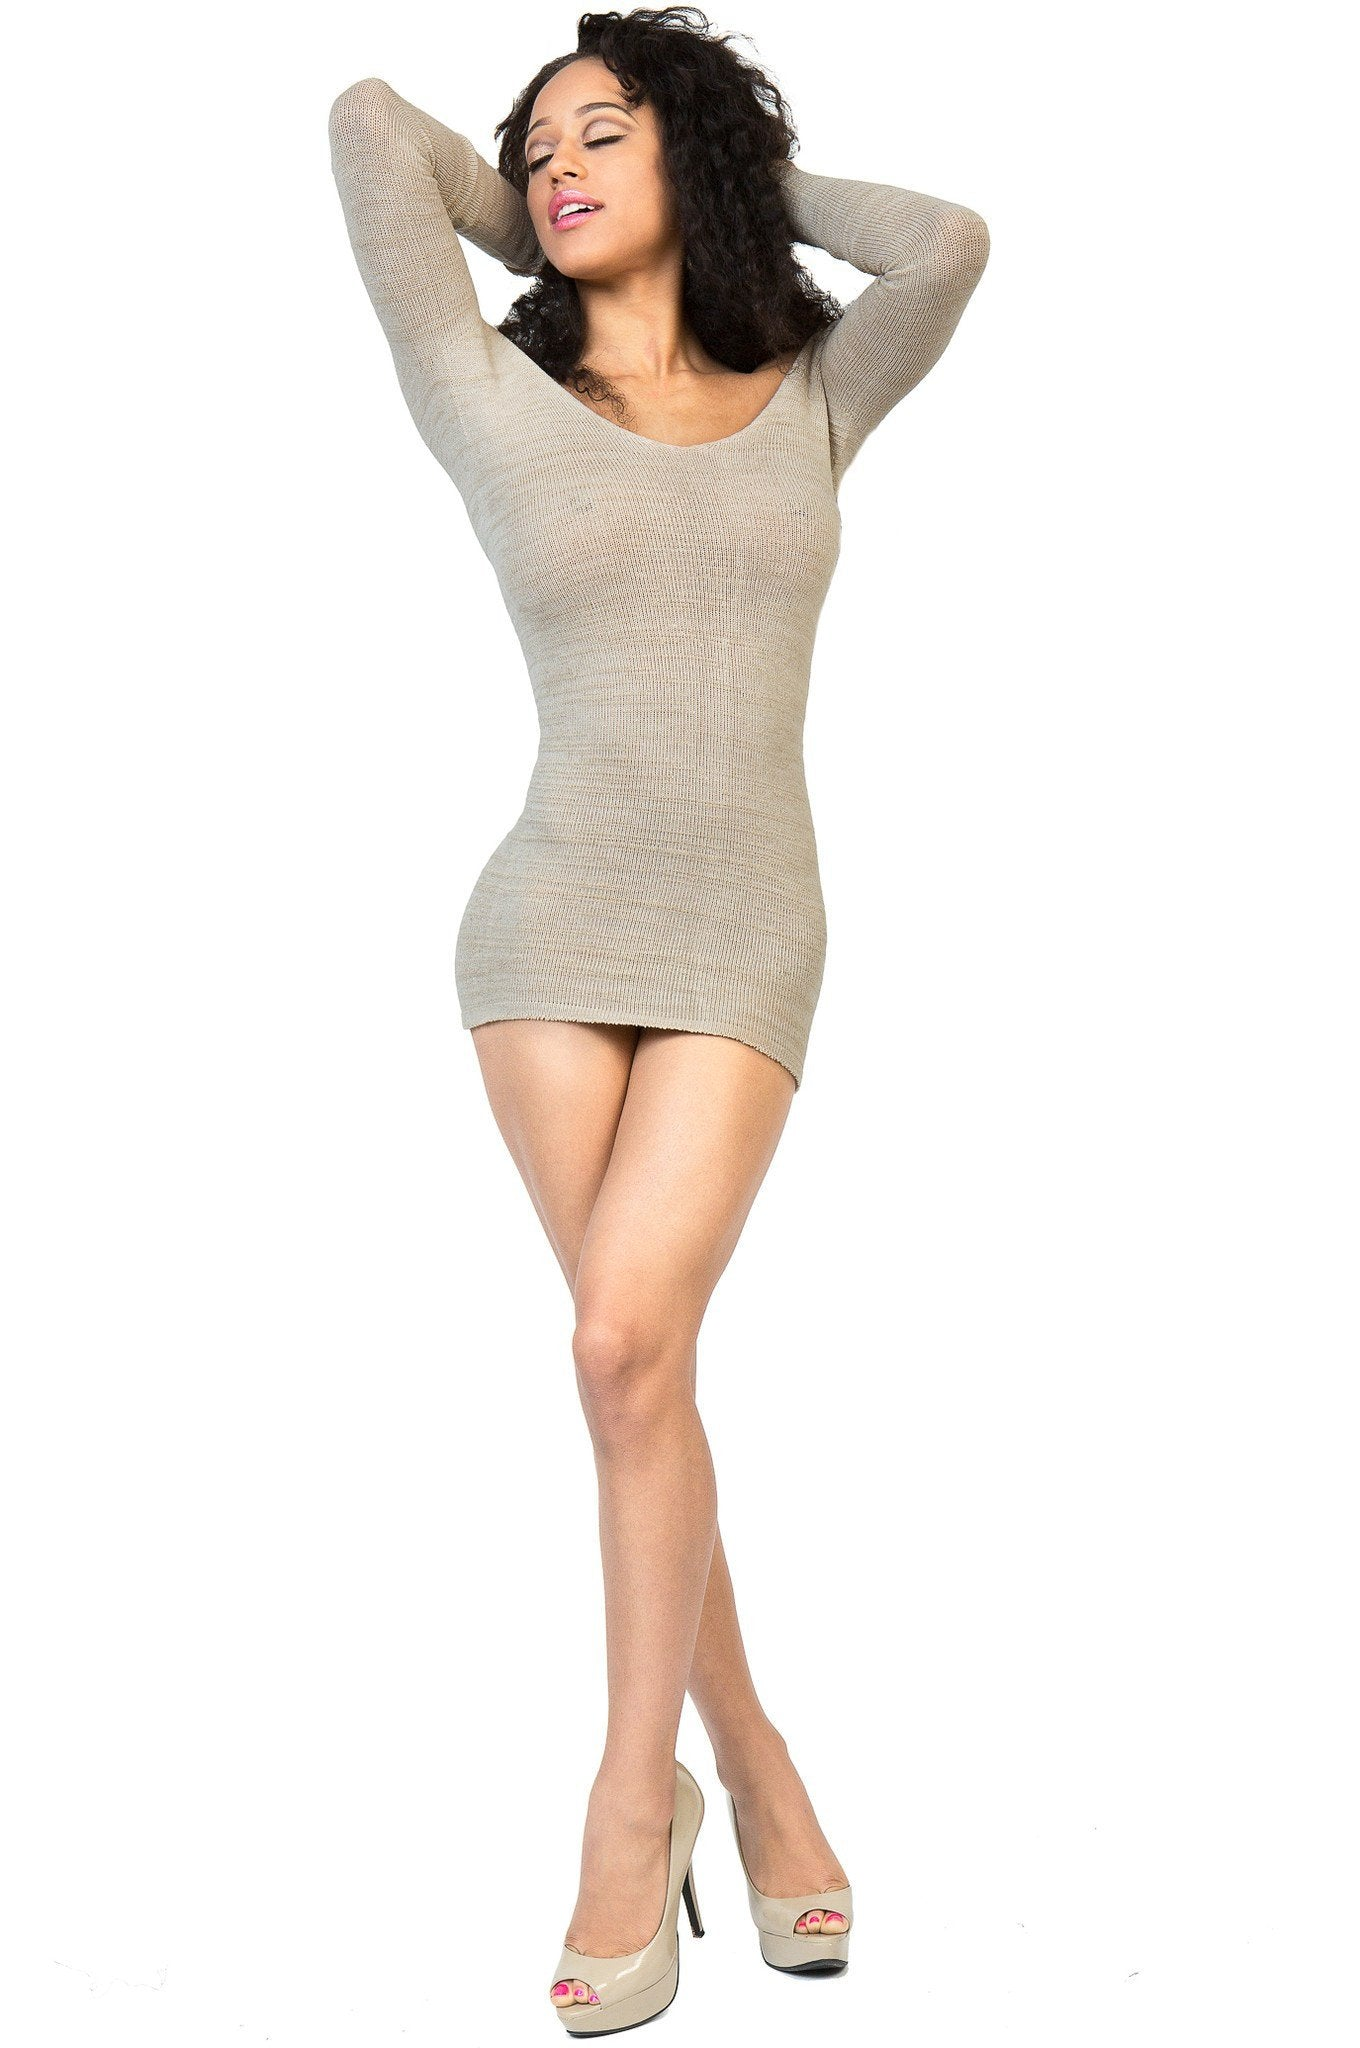 New York Black / Small Sexy Sweater Mini Dress / Off The Shoulder @KDdanceNewYork #MadeInUSA - 2